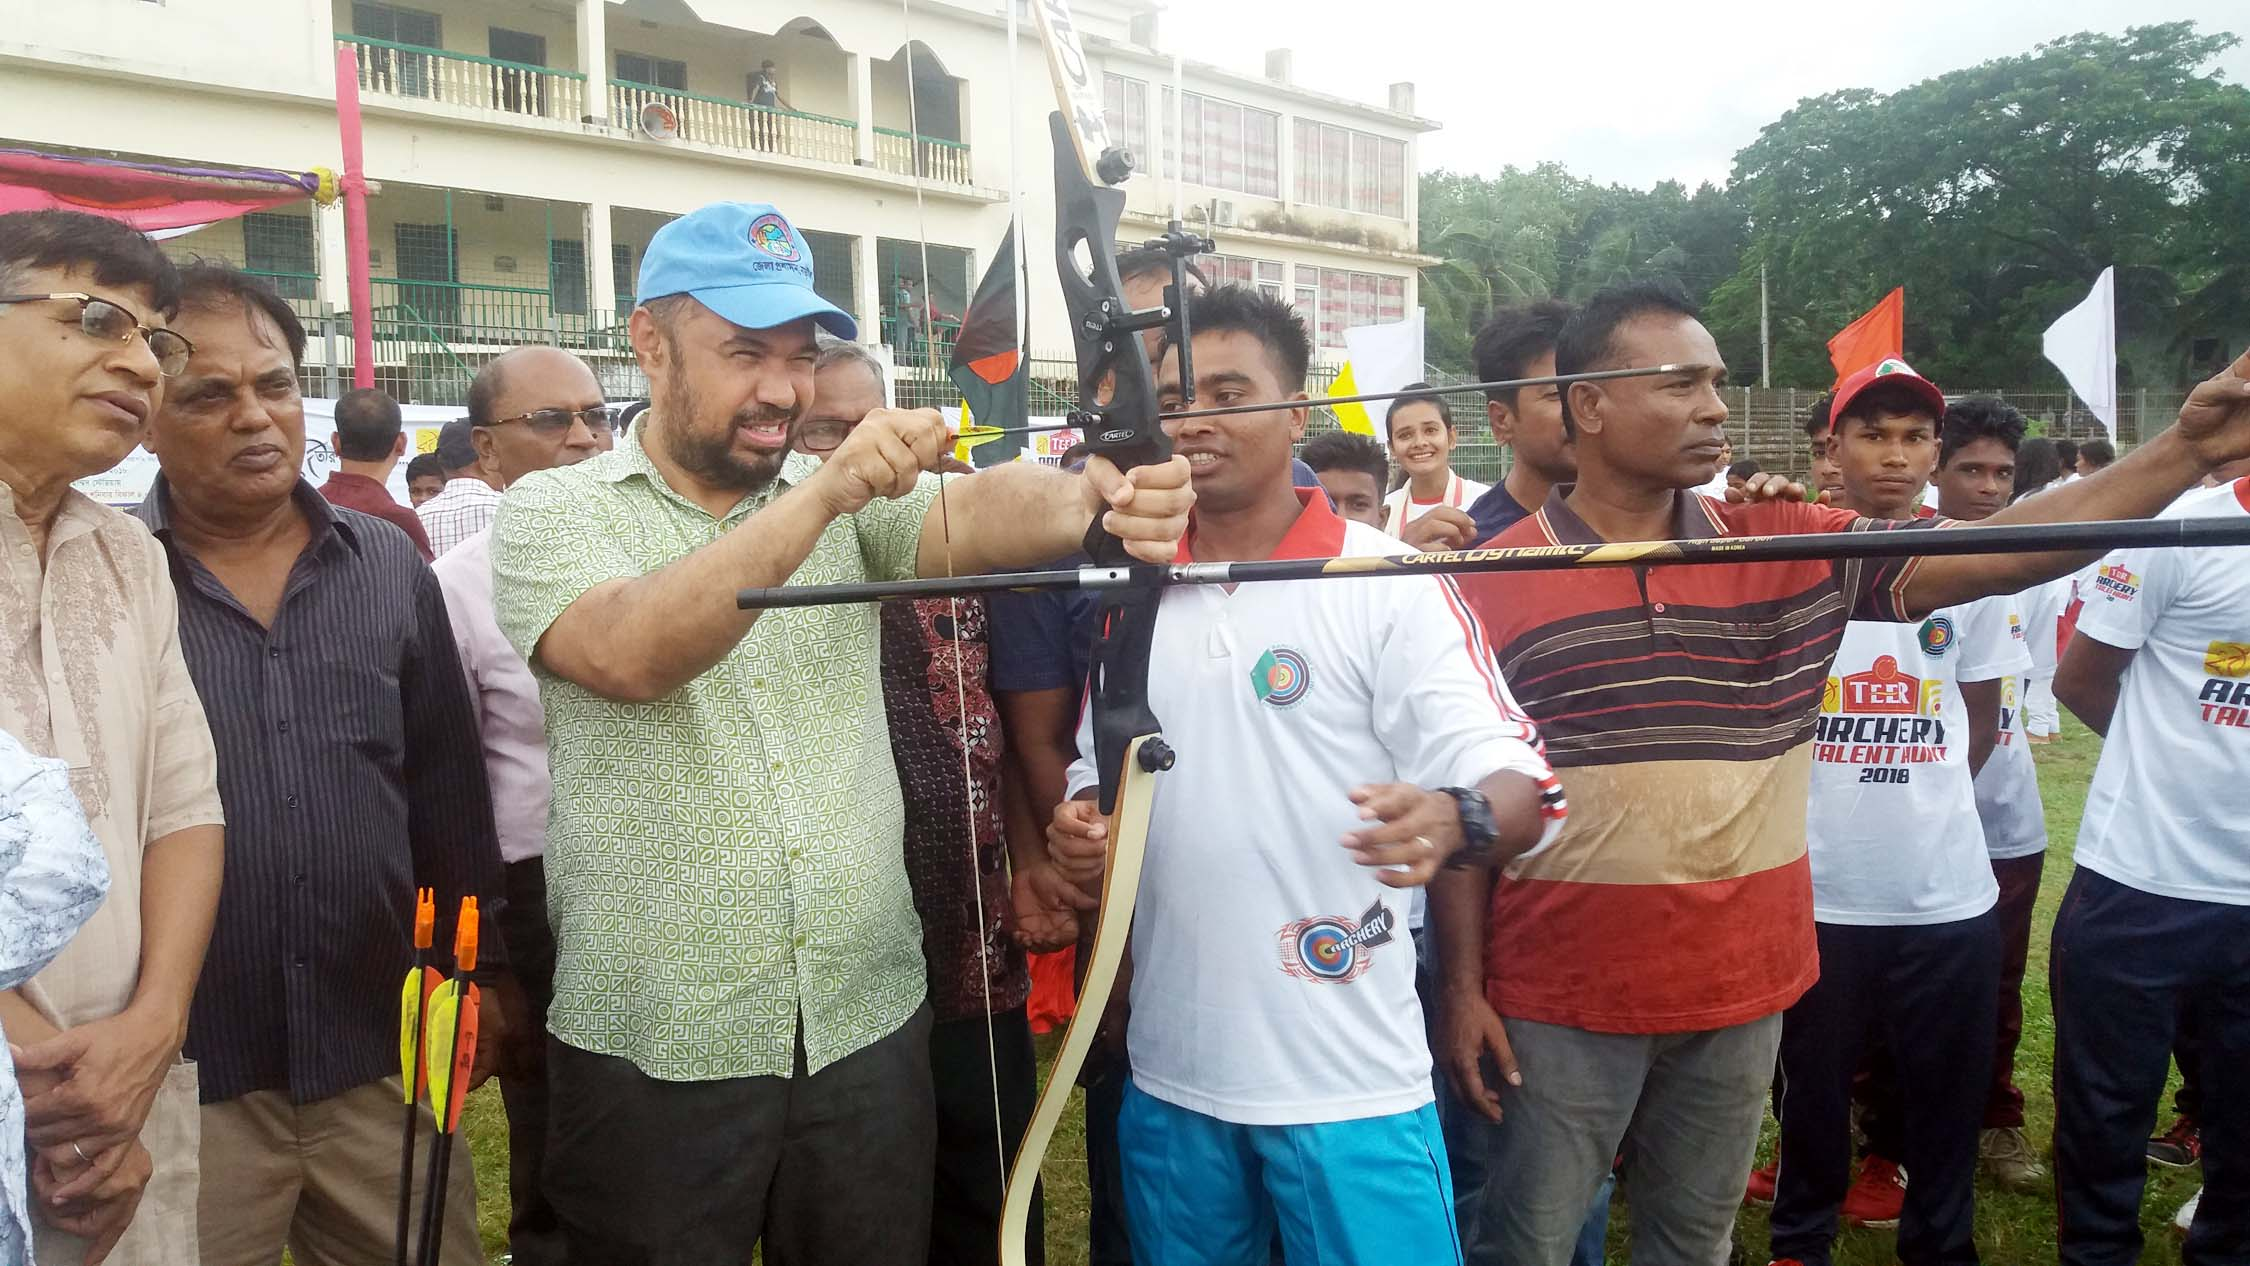 A participant of the talent hunt programme of archerers in action at the Bir Shreshtha Nur Mohammad Stadium in Narail on Saturday. Bangladesh Archery Federation has arranged the programme, while City Group has sponsored the programme.